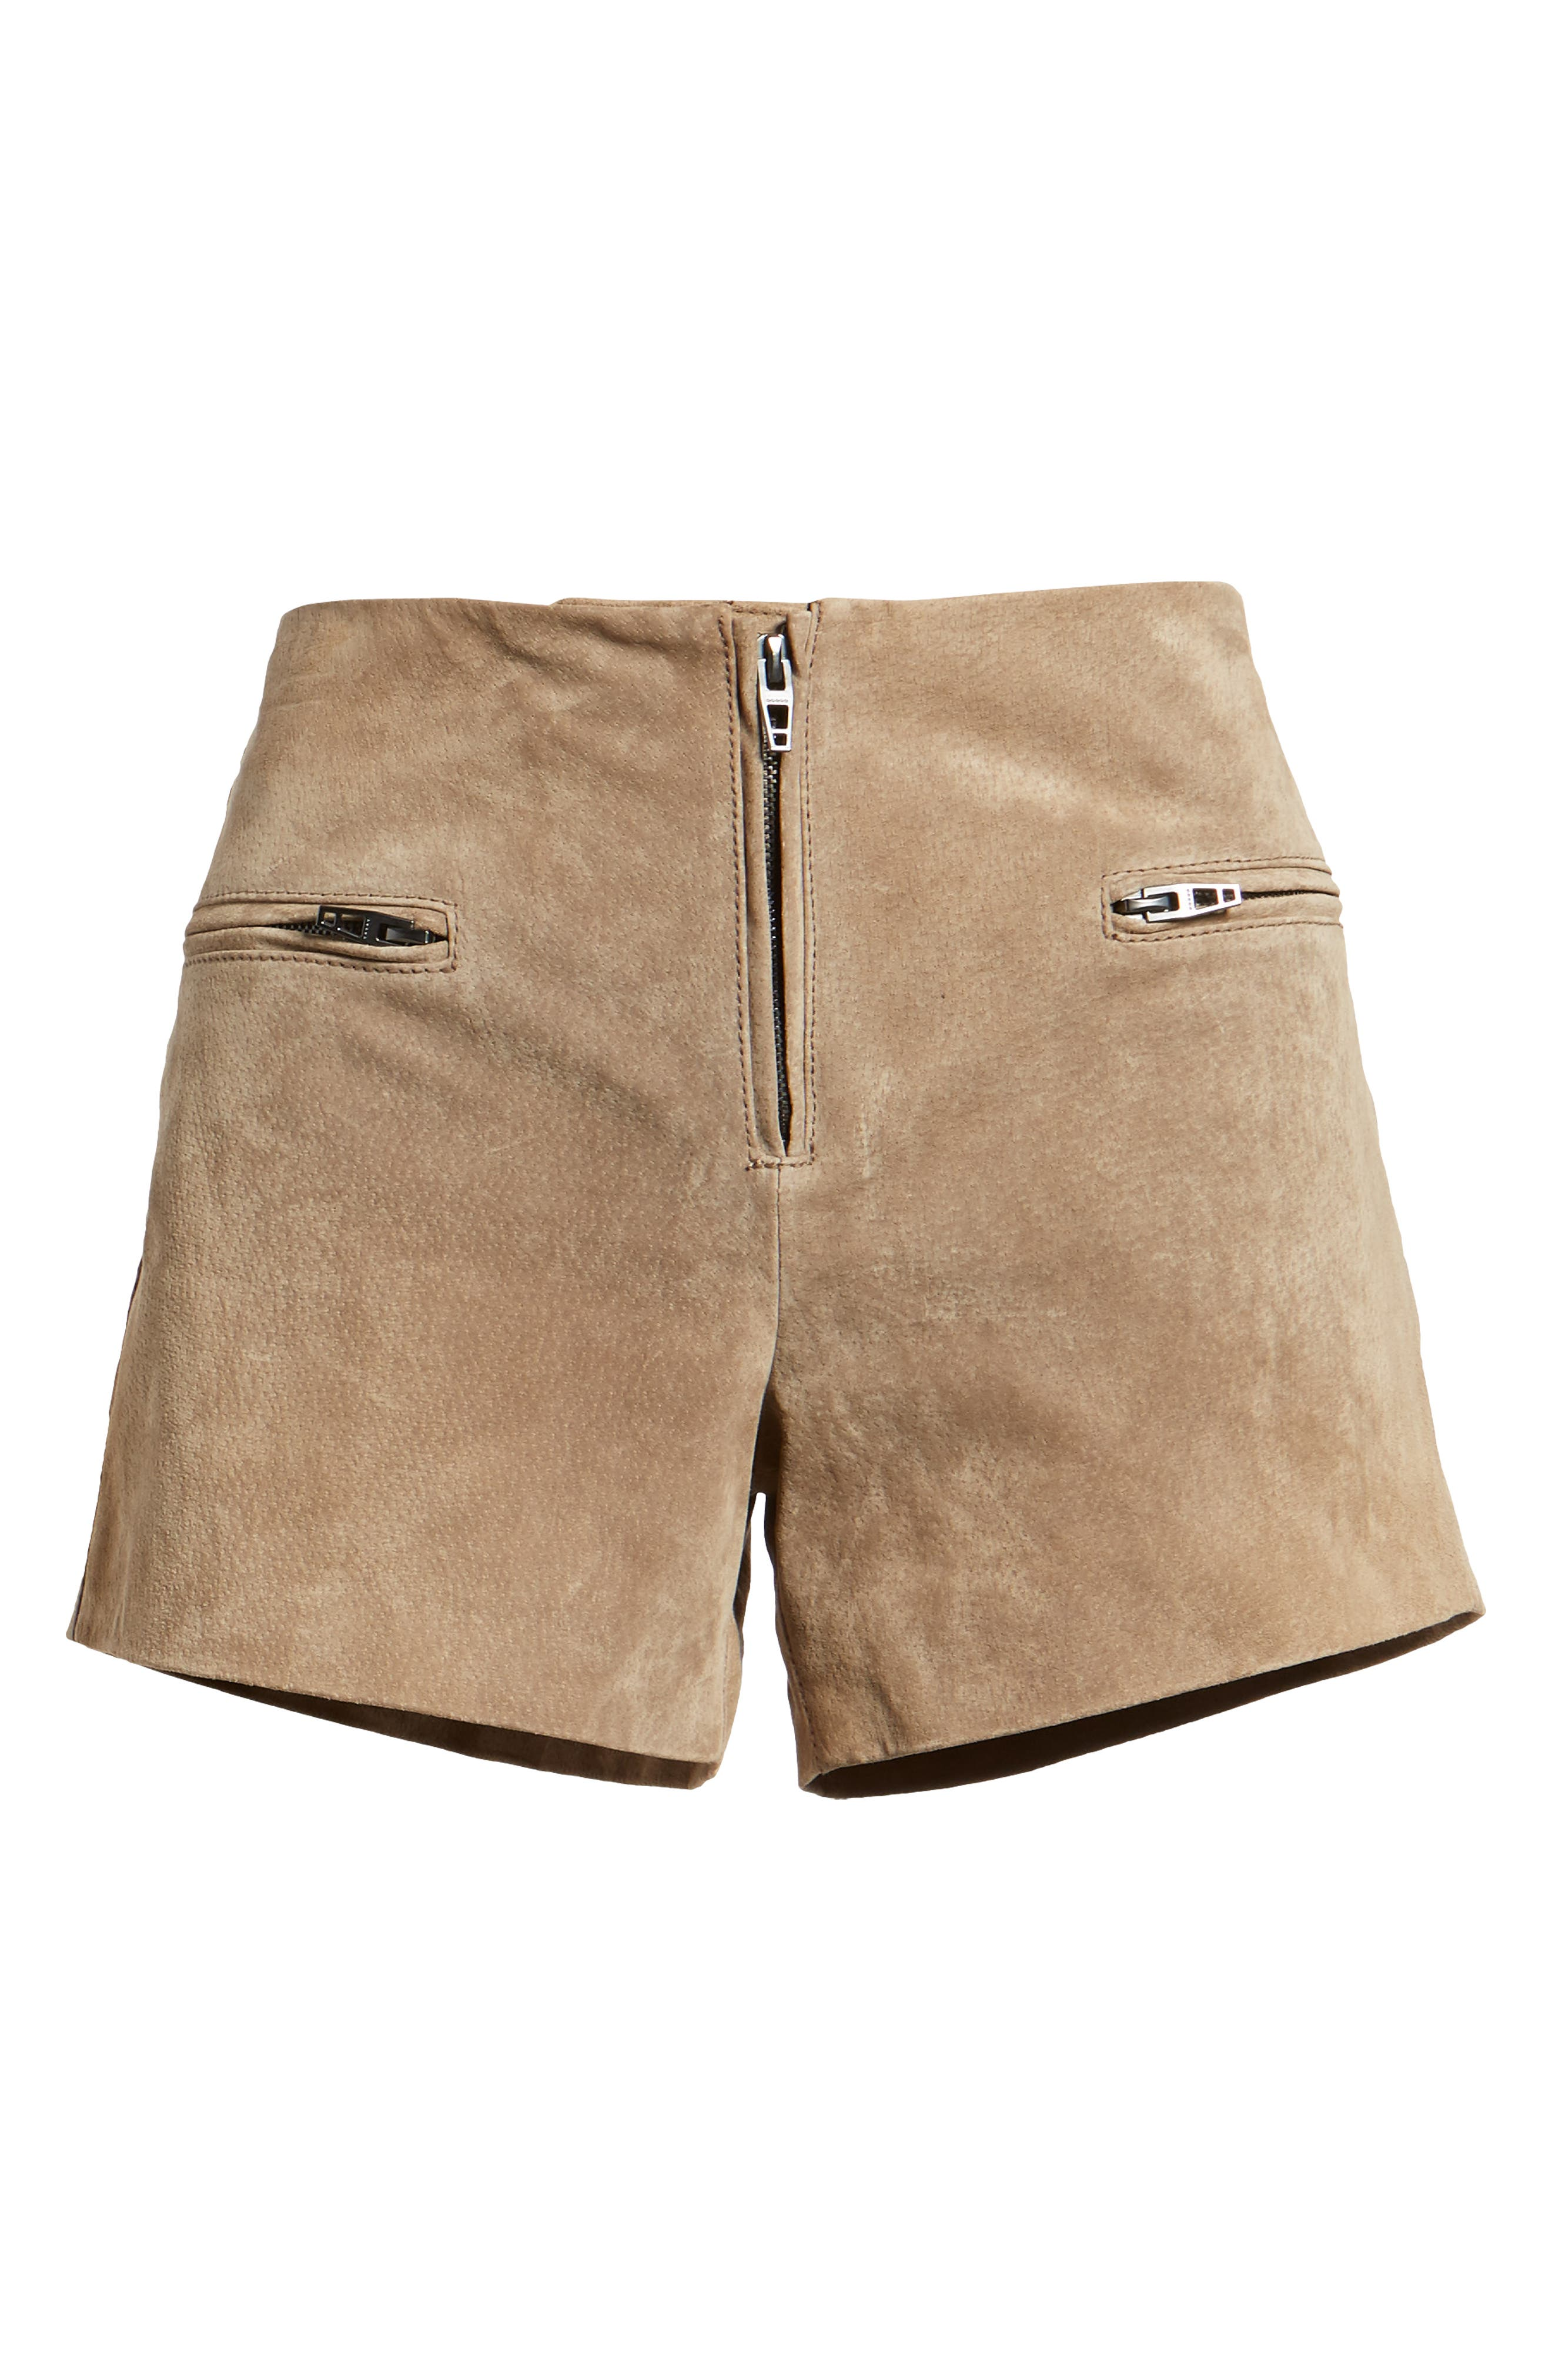 Suede Shorts,                             Alternate thumbnail 6, color,                             MIDNIGHT TOKER